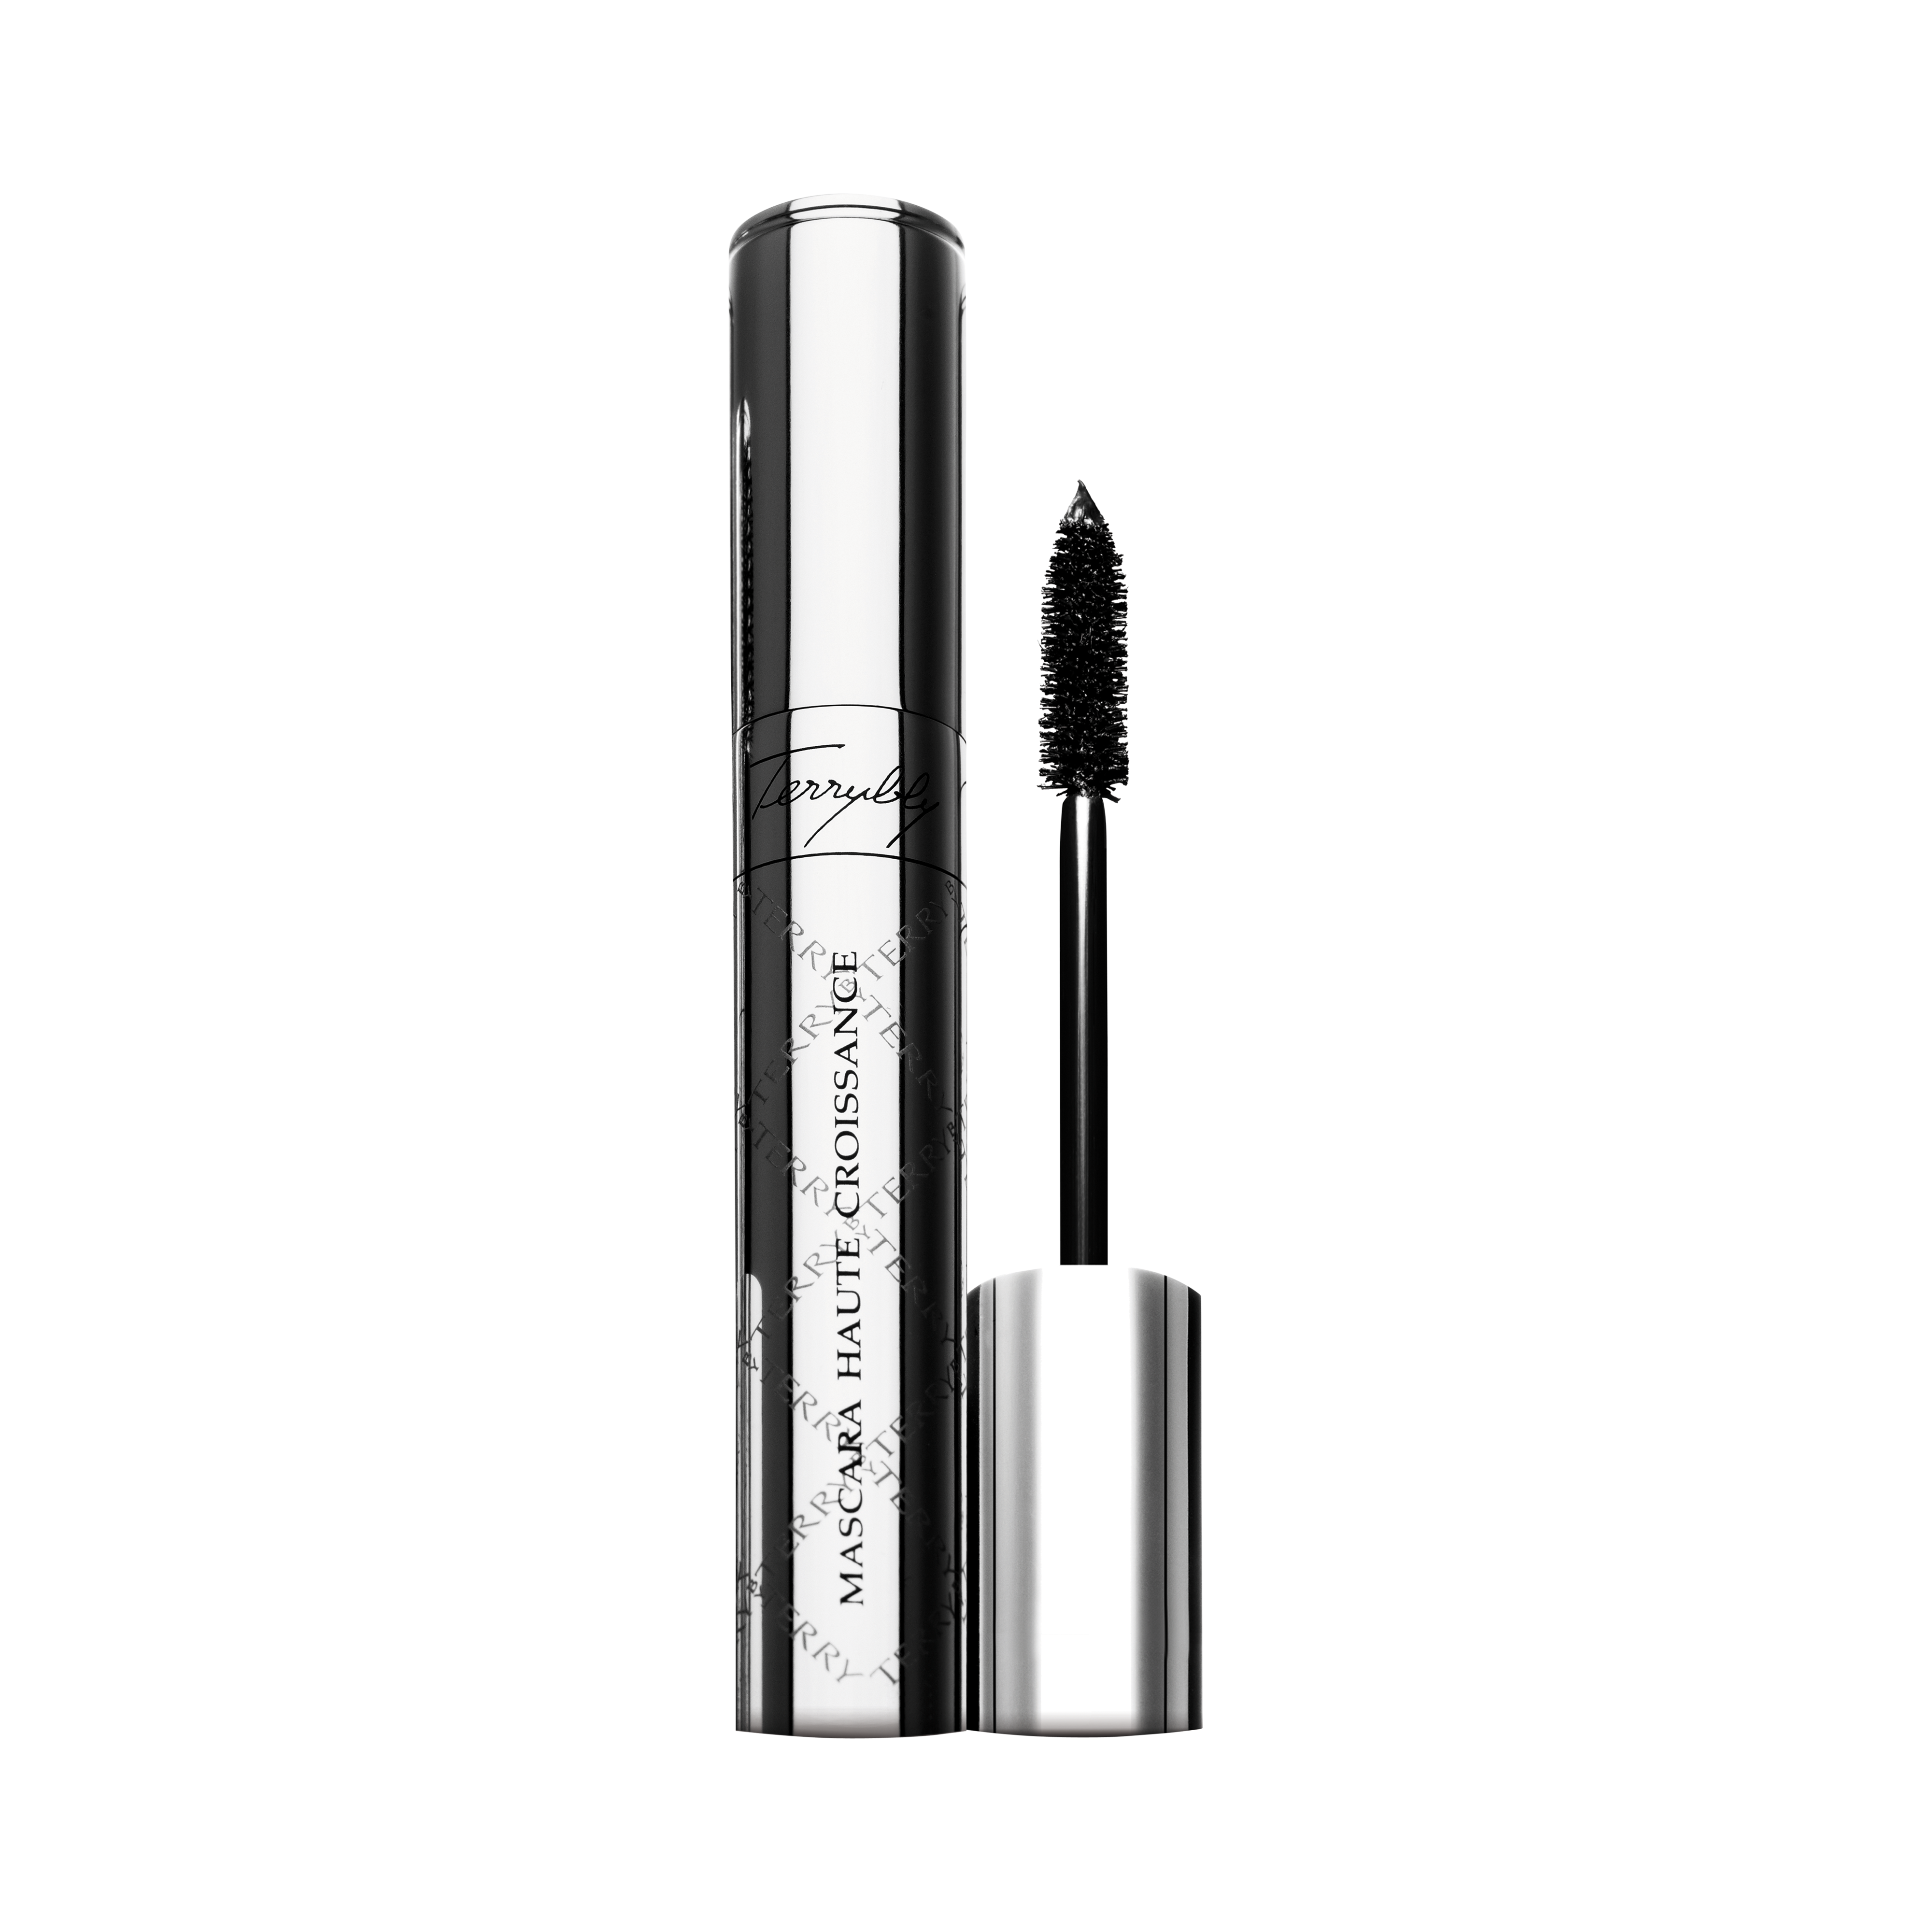 Terrybly Growth Booster Mascara 1 Black Parti-Pris